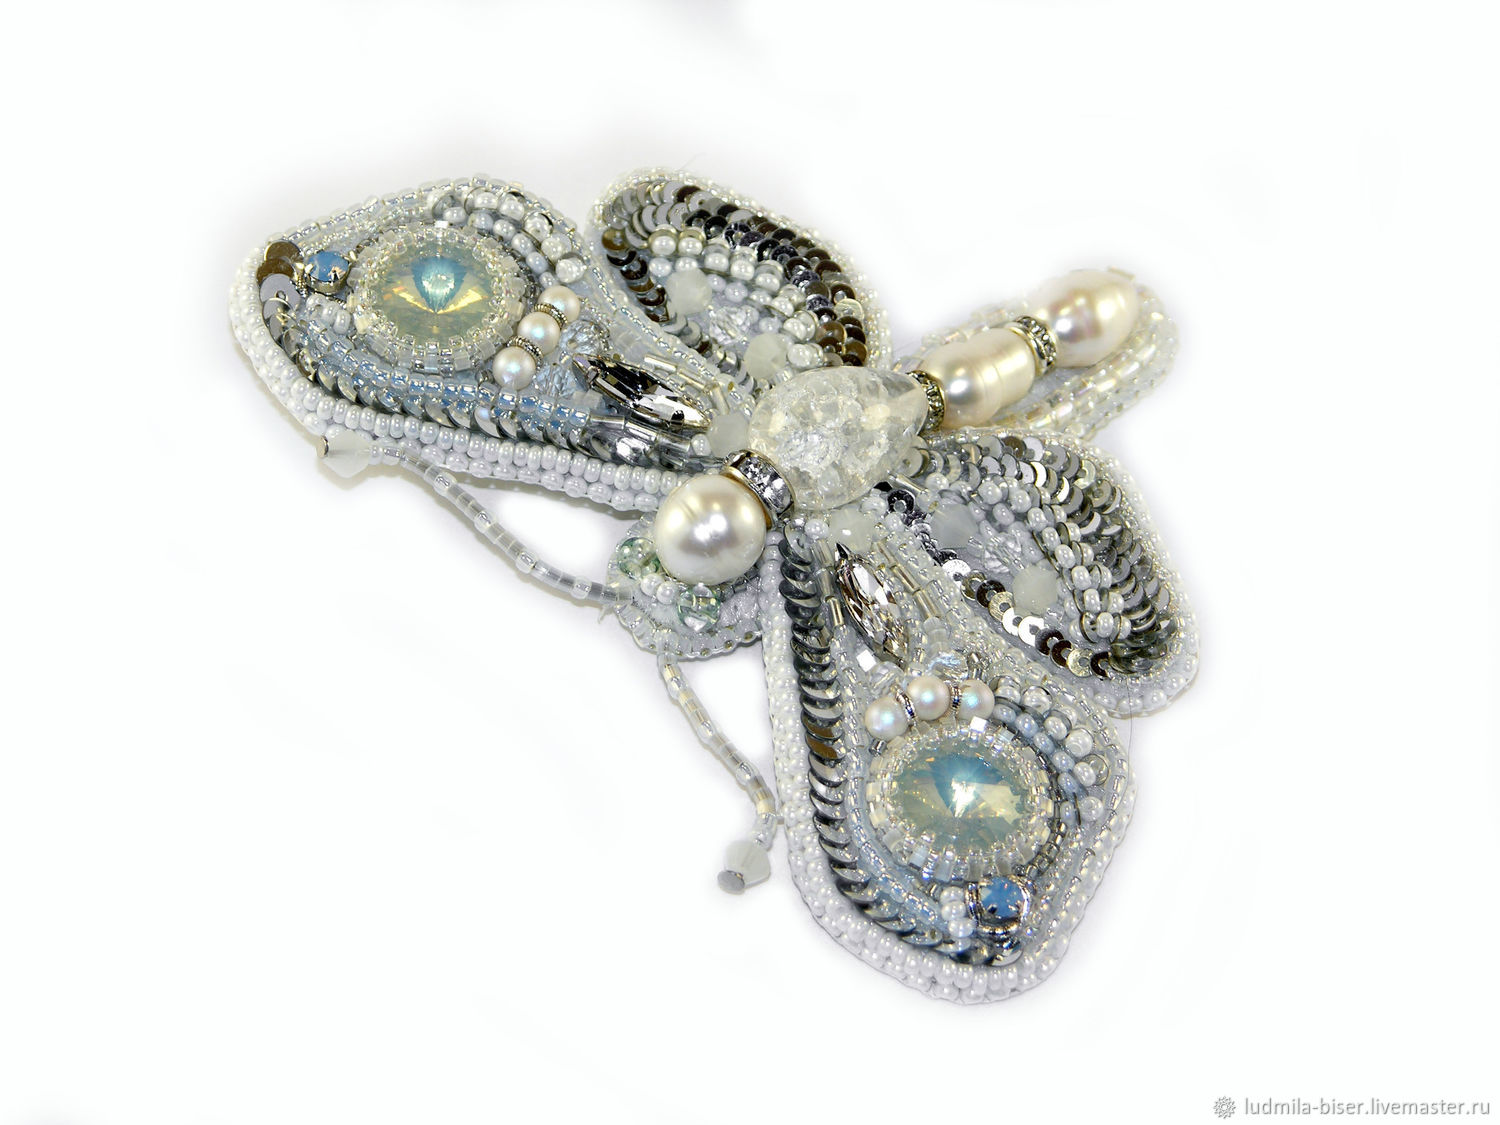 Brooch ' White hawk', Brooches, Moscow,  Фото №1